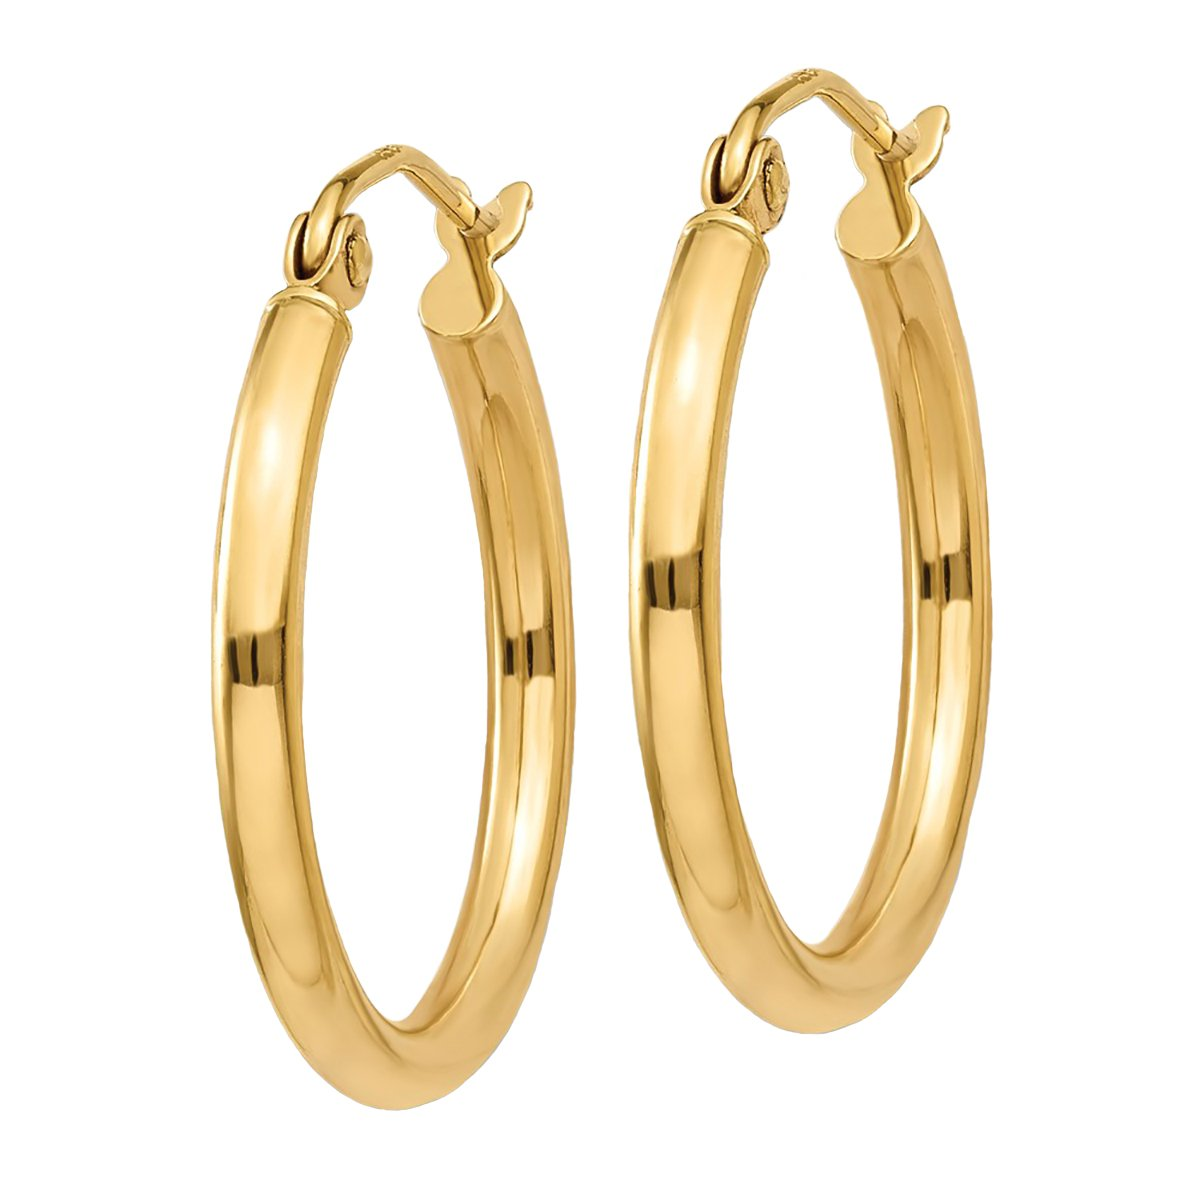 """Designs by Nathan, Classic 14K Yellow Gold Tube Hoop Earrings: Seamless, Hollow, and Lightweight (Regular 2mm x 20mm (about 3/4""""))"""